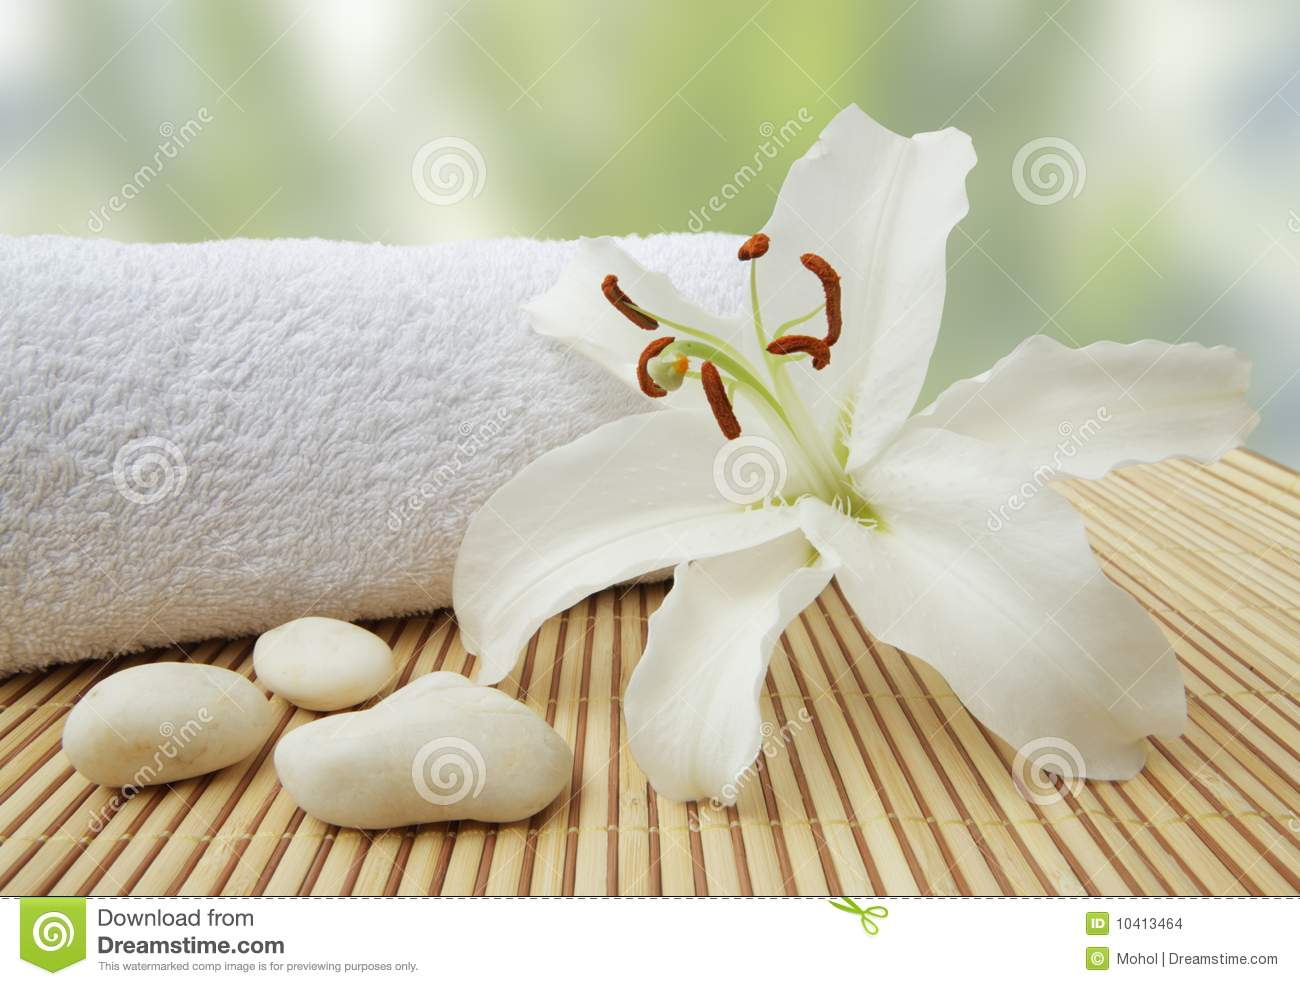 Download Wellness Still Life Pebbles And White Lily Stock Photo - Image of bloom, love: 10413464